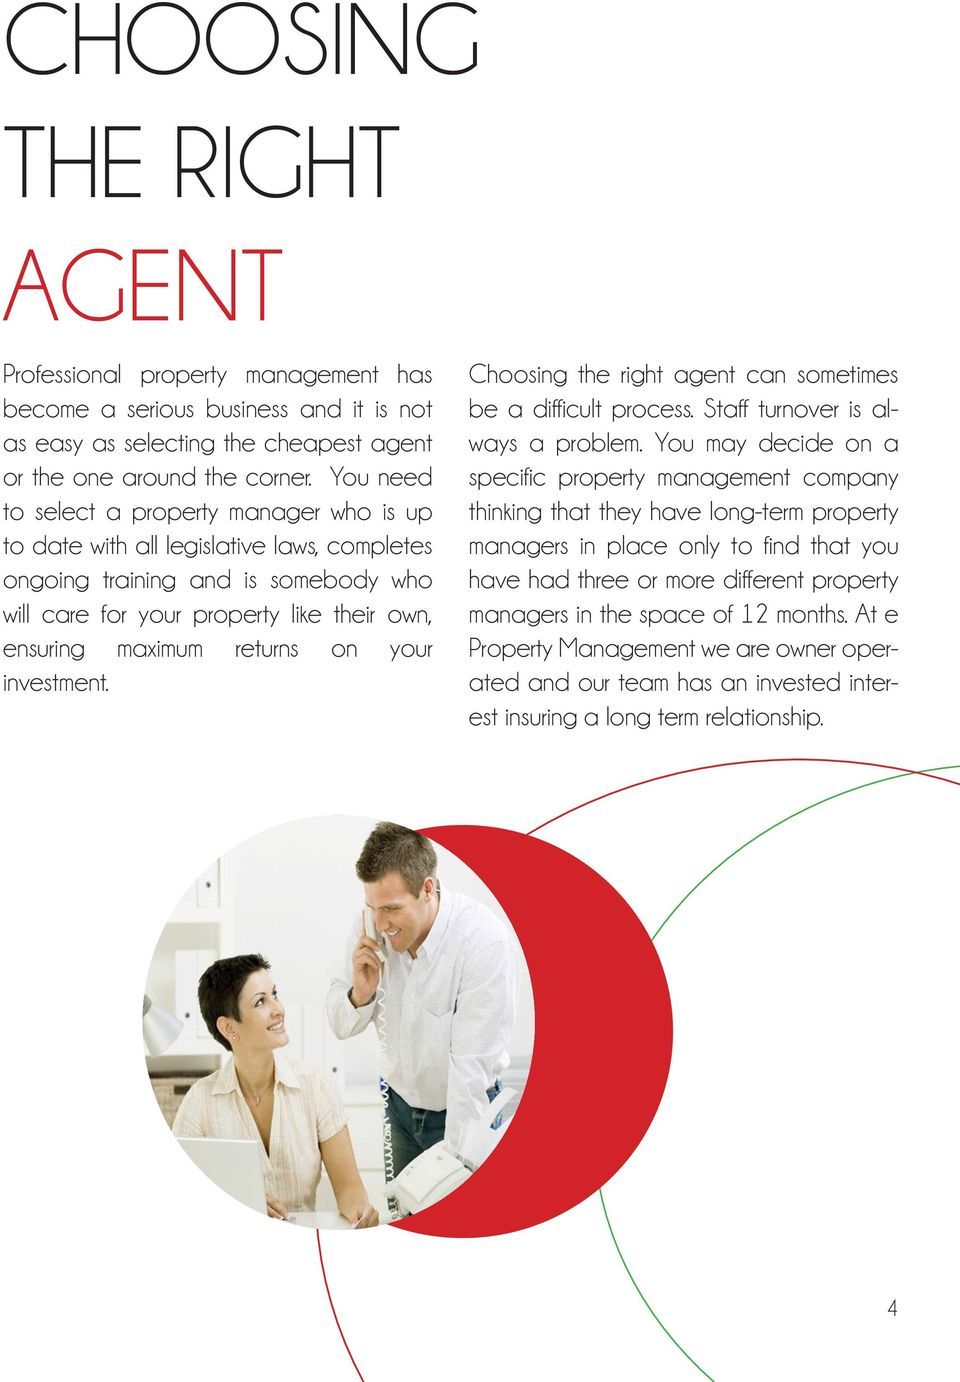 on your investment. Choosing the right agent can sometimes be a difficult process. Staff turnover is always a problem.